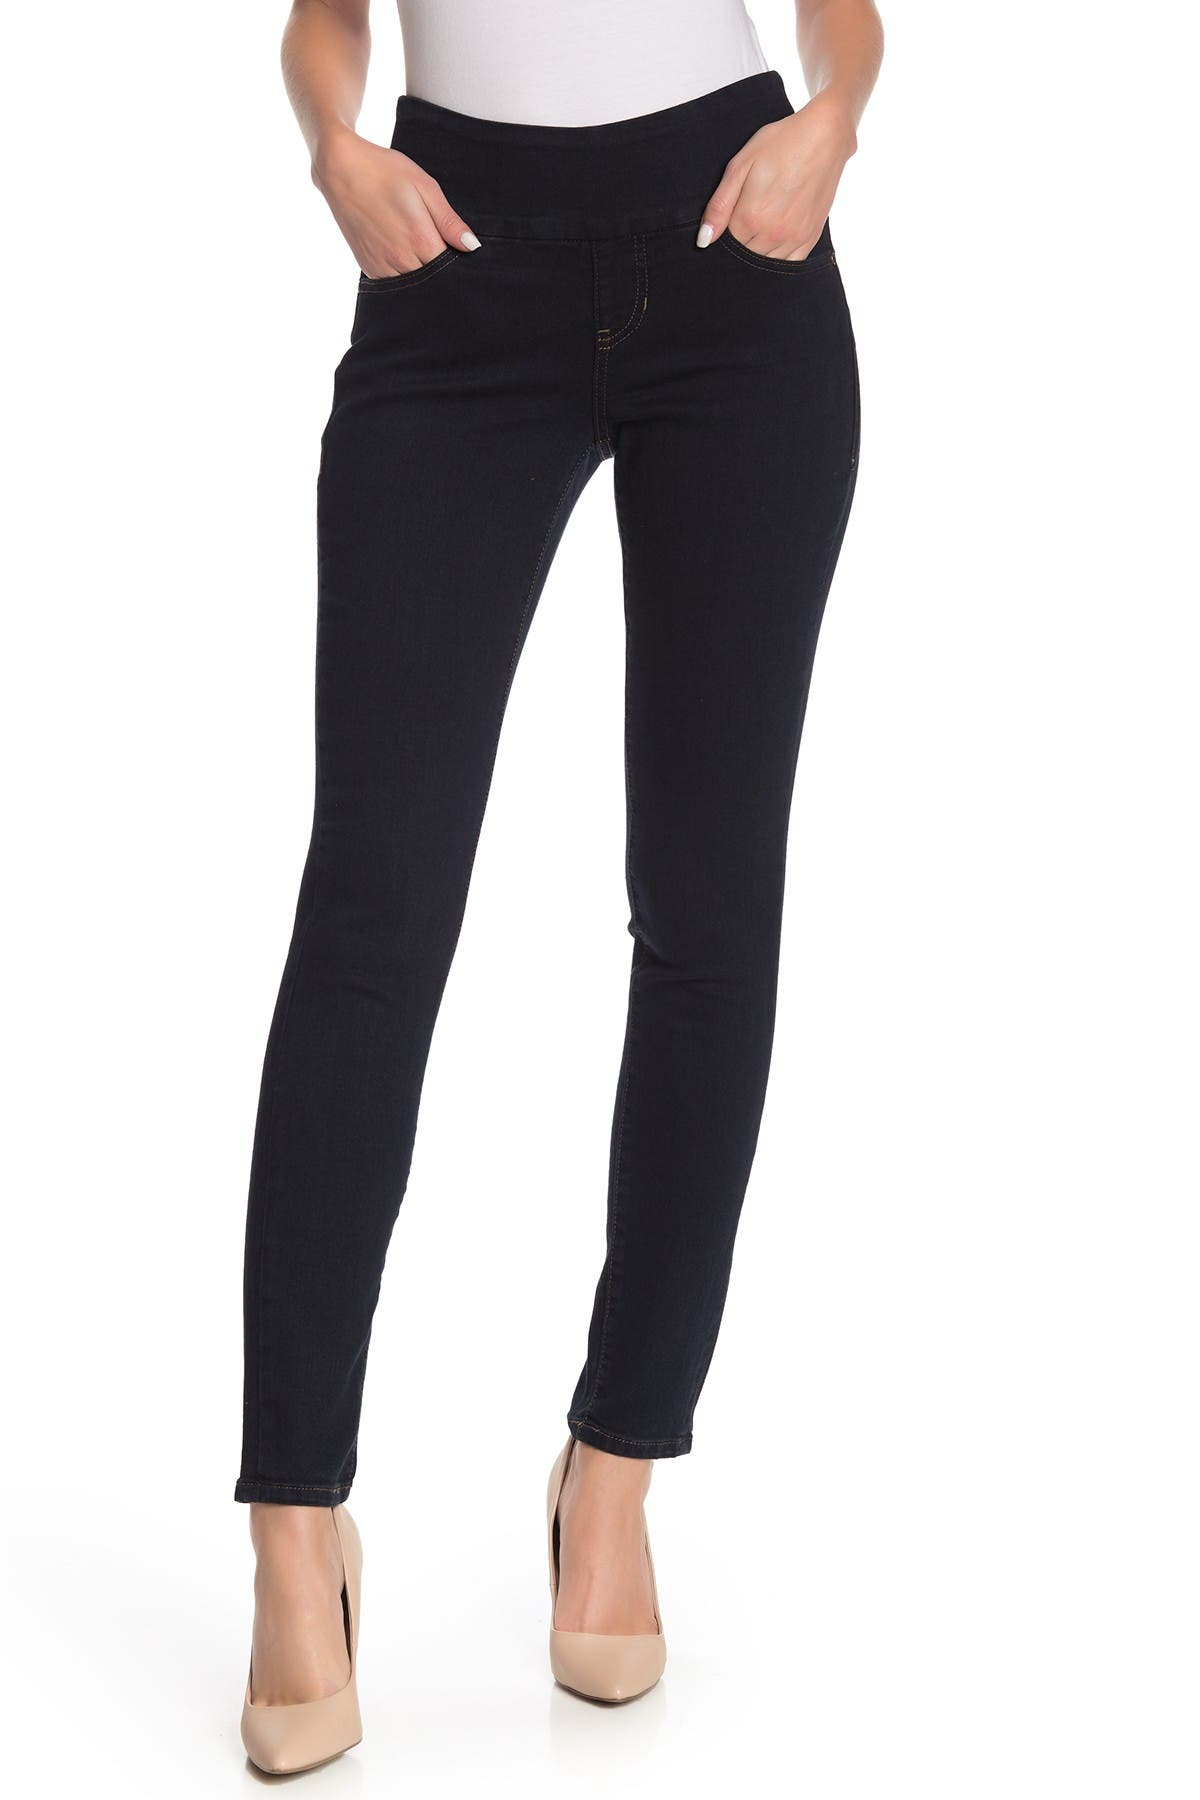 Image of JAG Jeans Nora Skinny Jeans